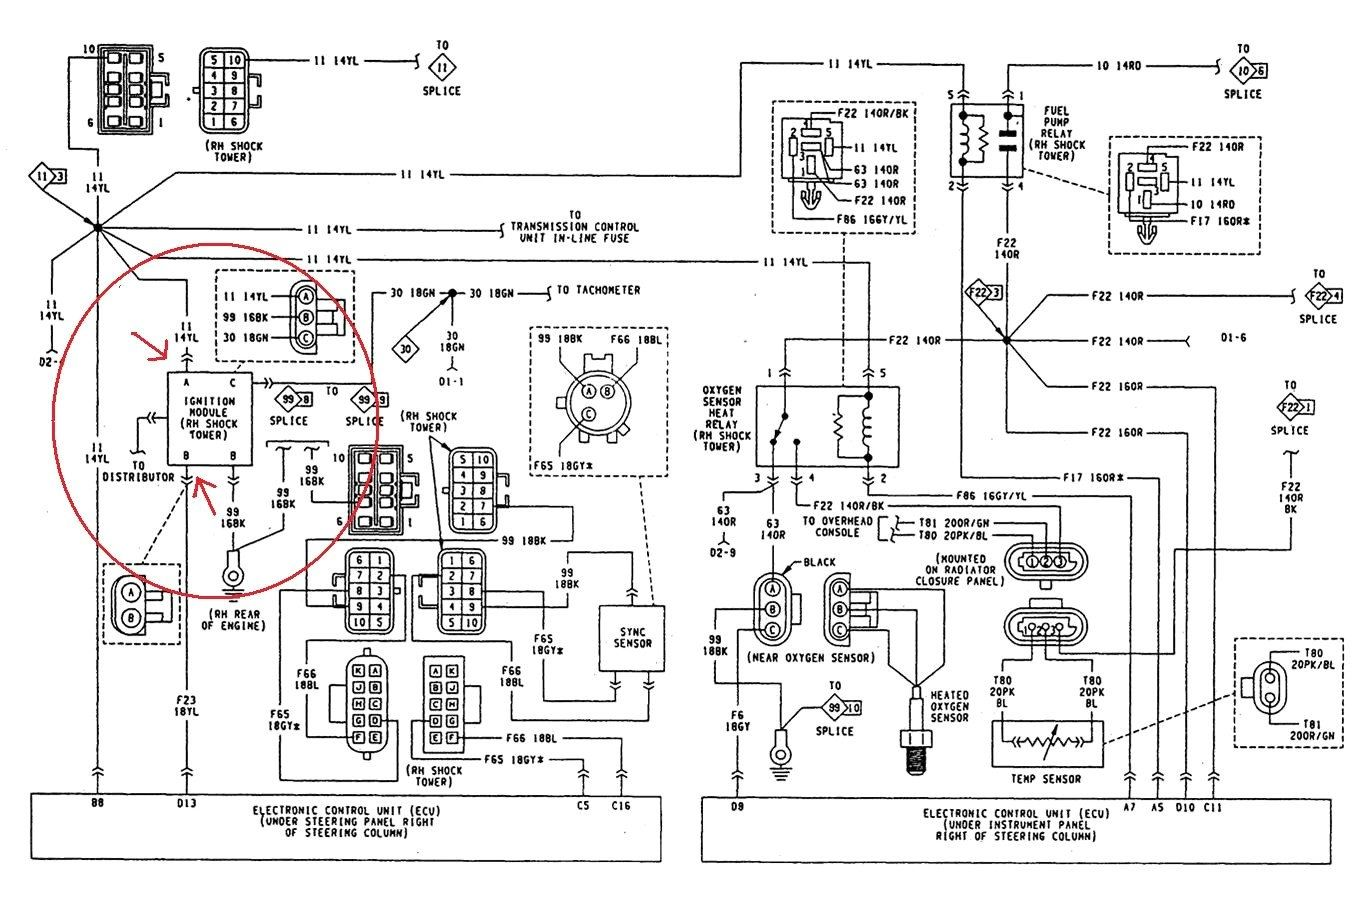 medium resolution of 90 jeep yj wiring diagram wiring diagram sheet 90 jeep yj vacuum diagram wiring schematic wiring